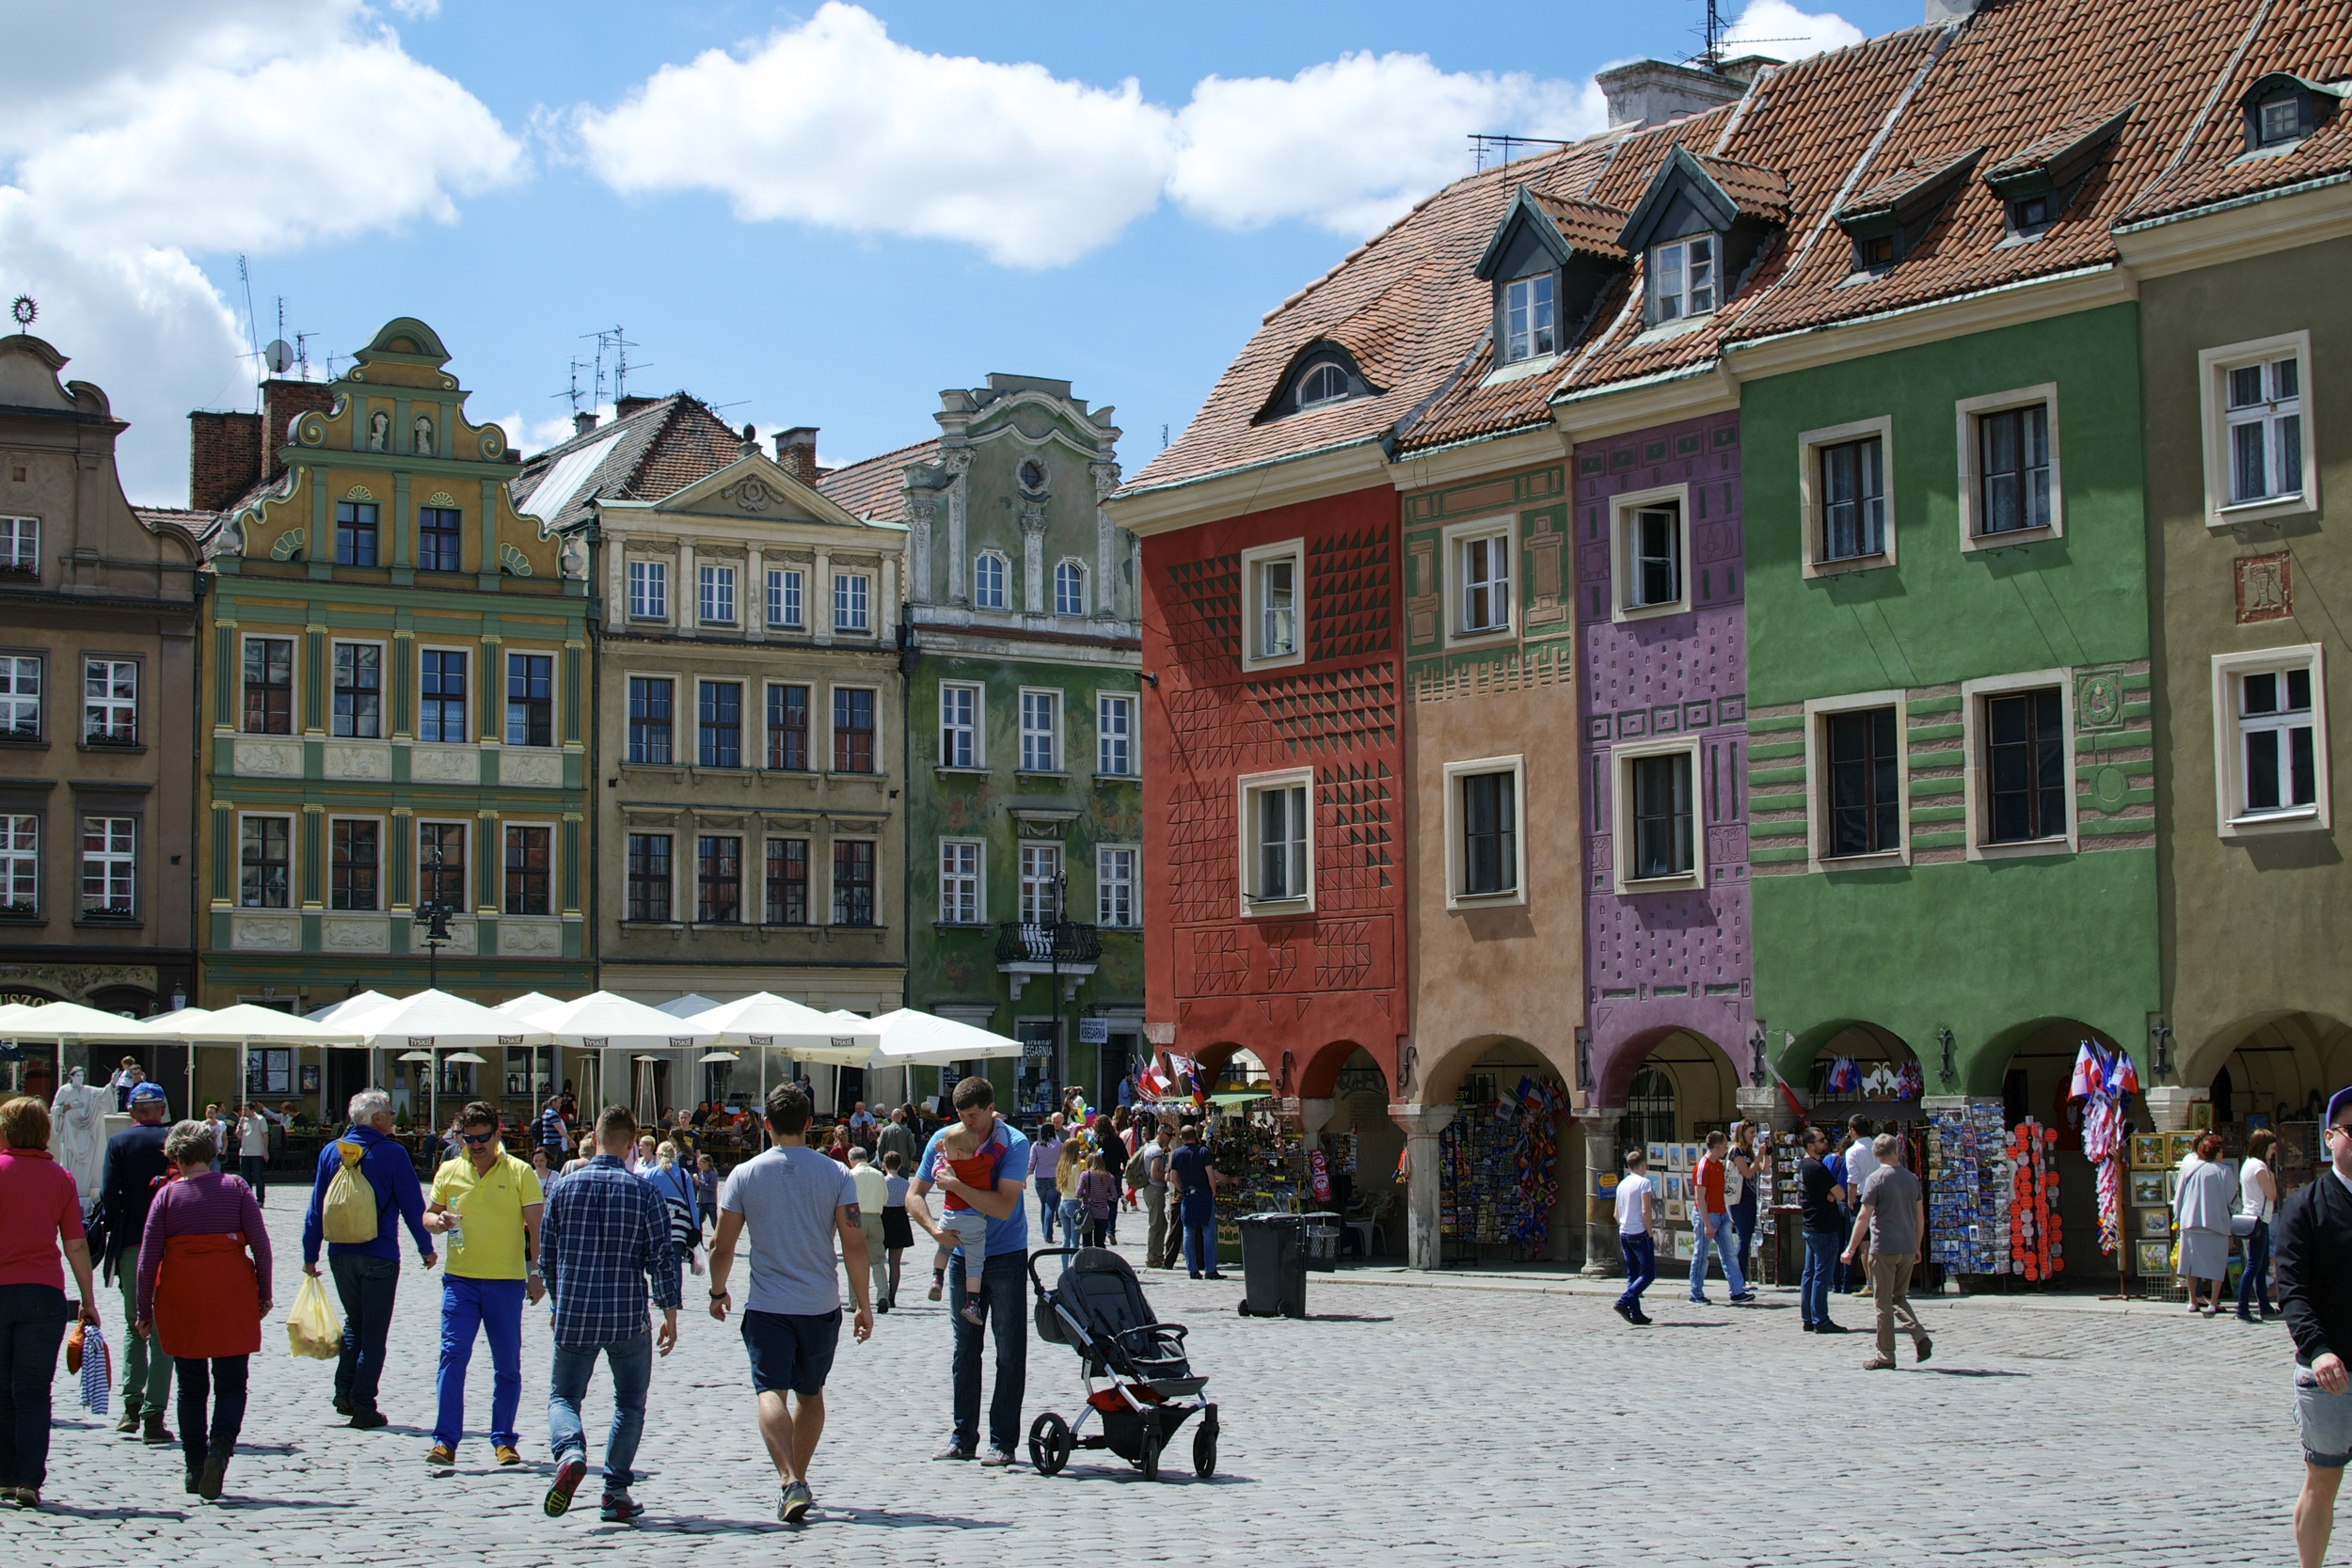 Poznan's Old Town Square.